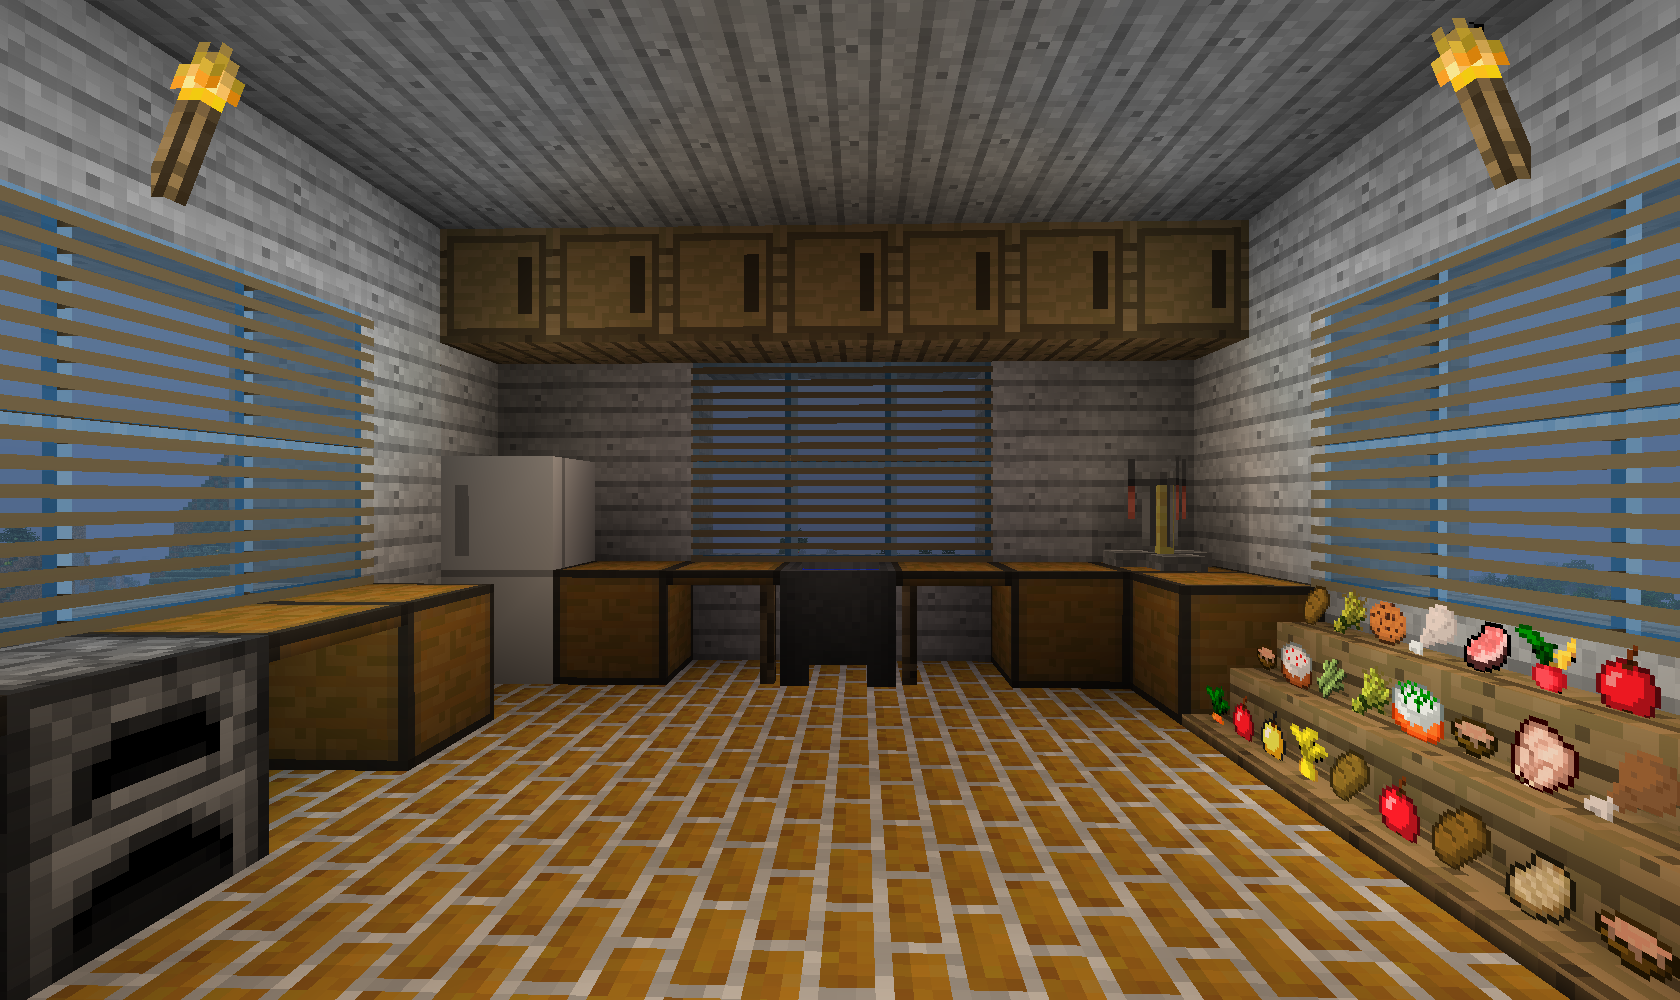 Pin By Manda On Minecraft Minecraft Kitchen Ideas Minecraft House Tutorials Minecraft House Designs